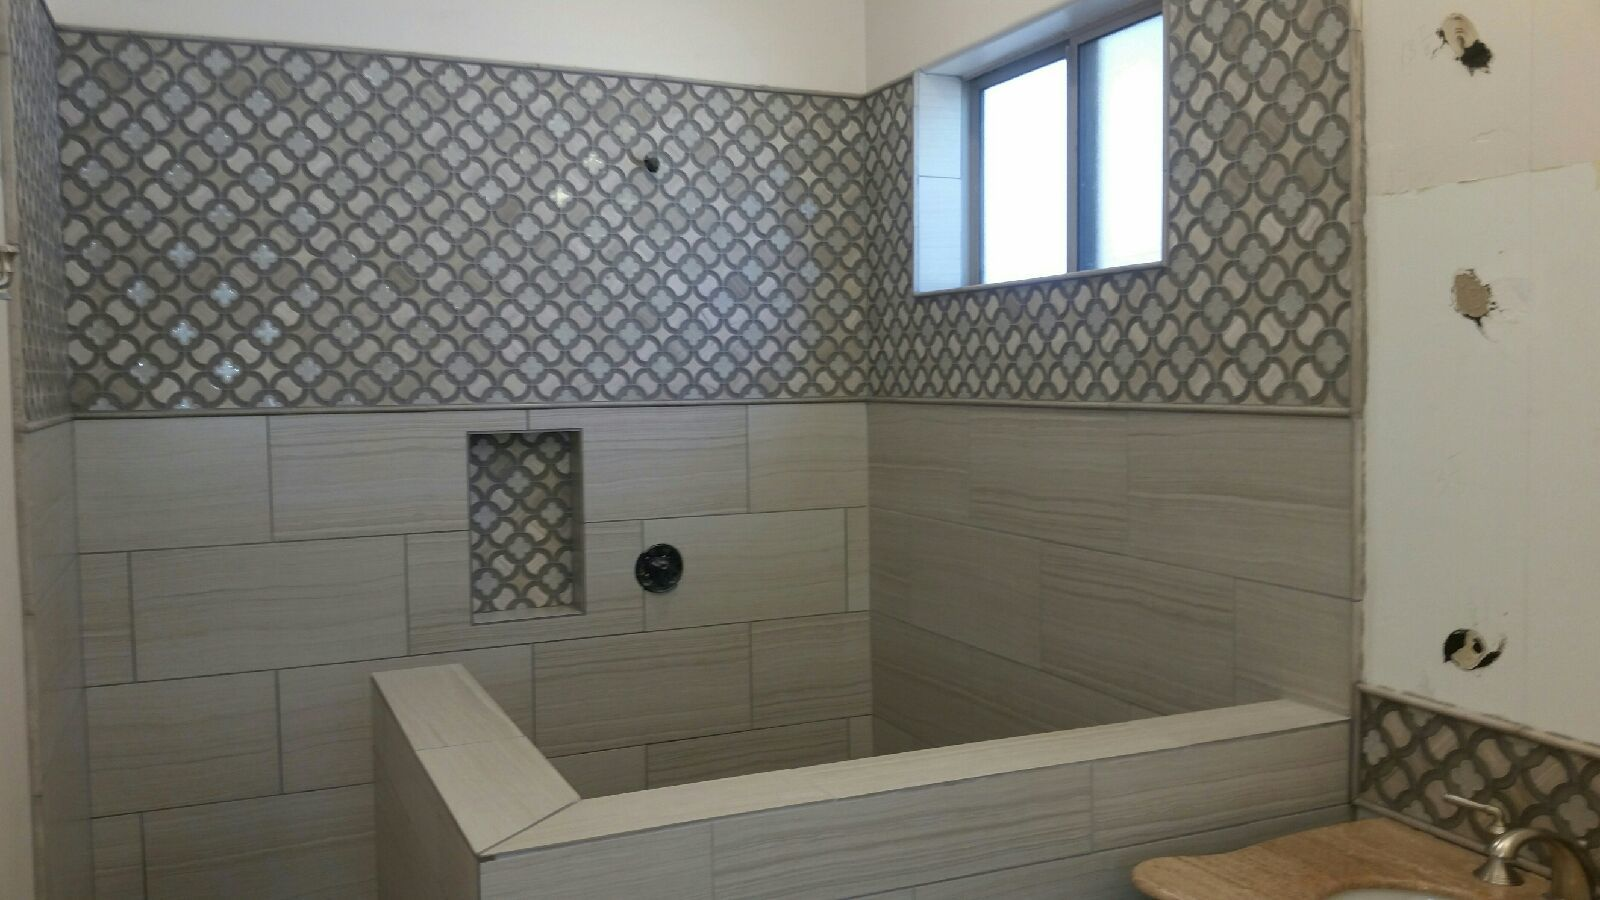 Shower Remodel- Glass Mosaic and Porcelain